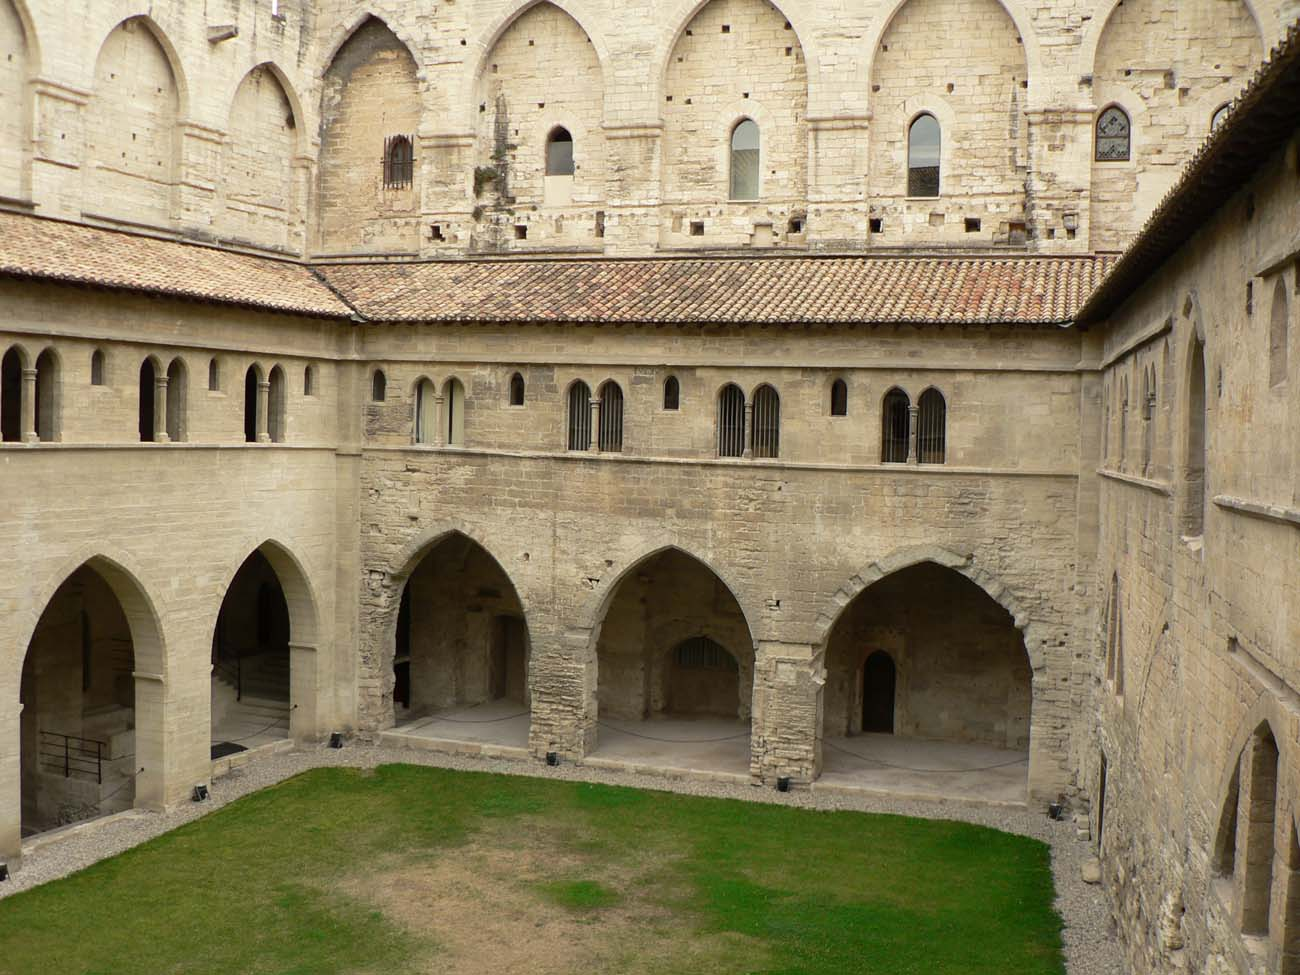 Cloisters garden (patio) - Ancient and medieval architecture